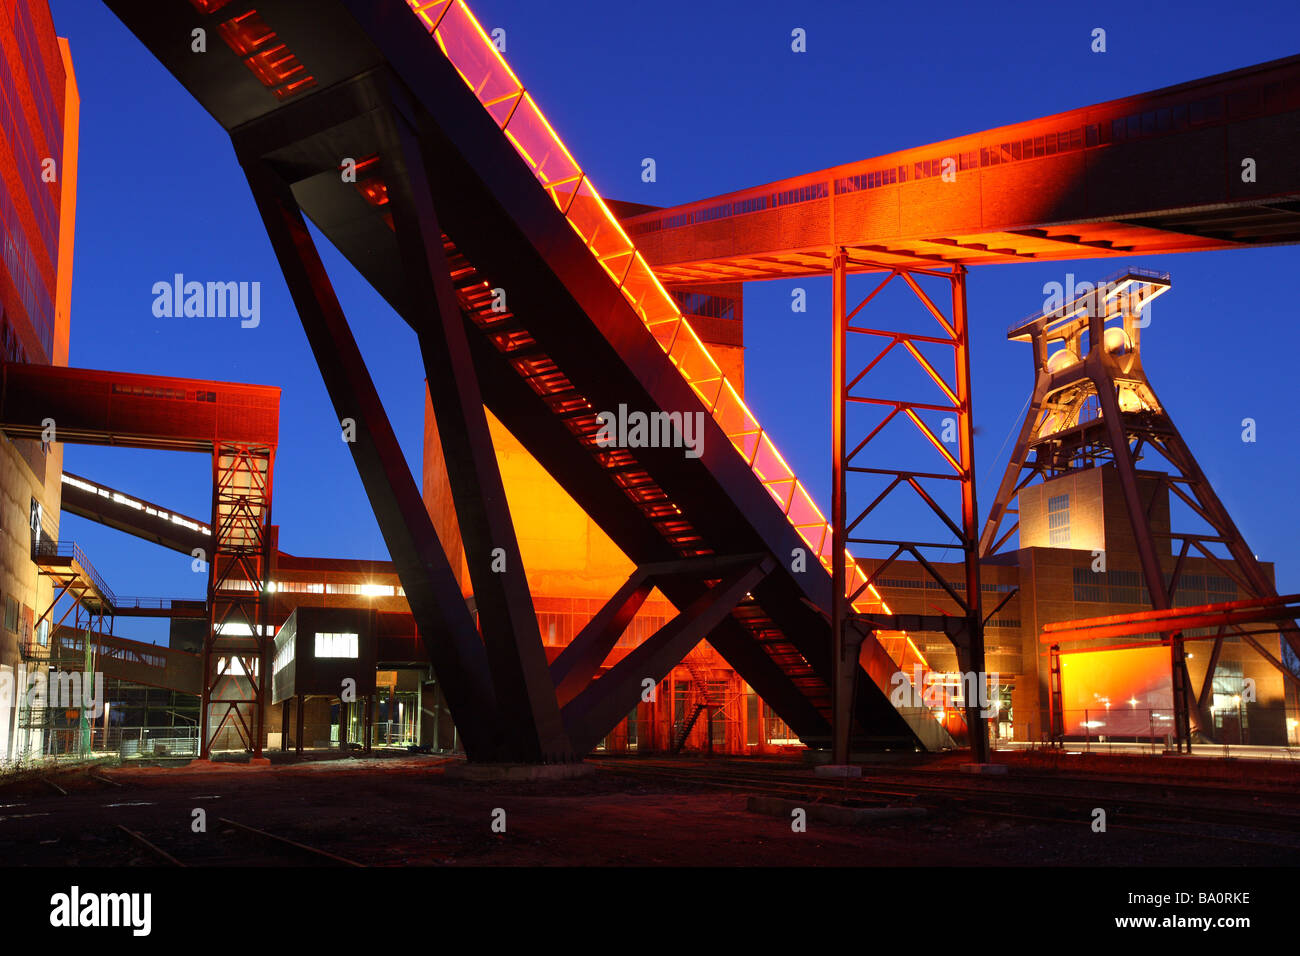 Unesco World heritage site former coal mine Zeche Zollverein. Exhibition halls in the Kohlewaesche. Red lighted - Stock Image